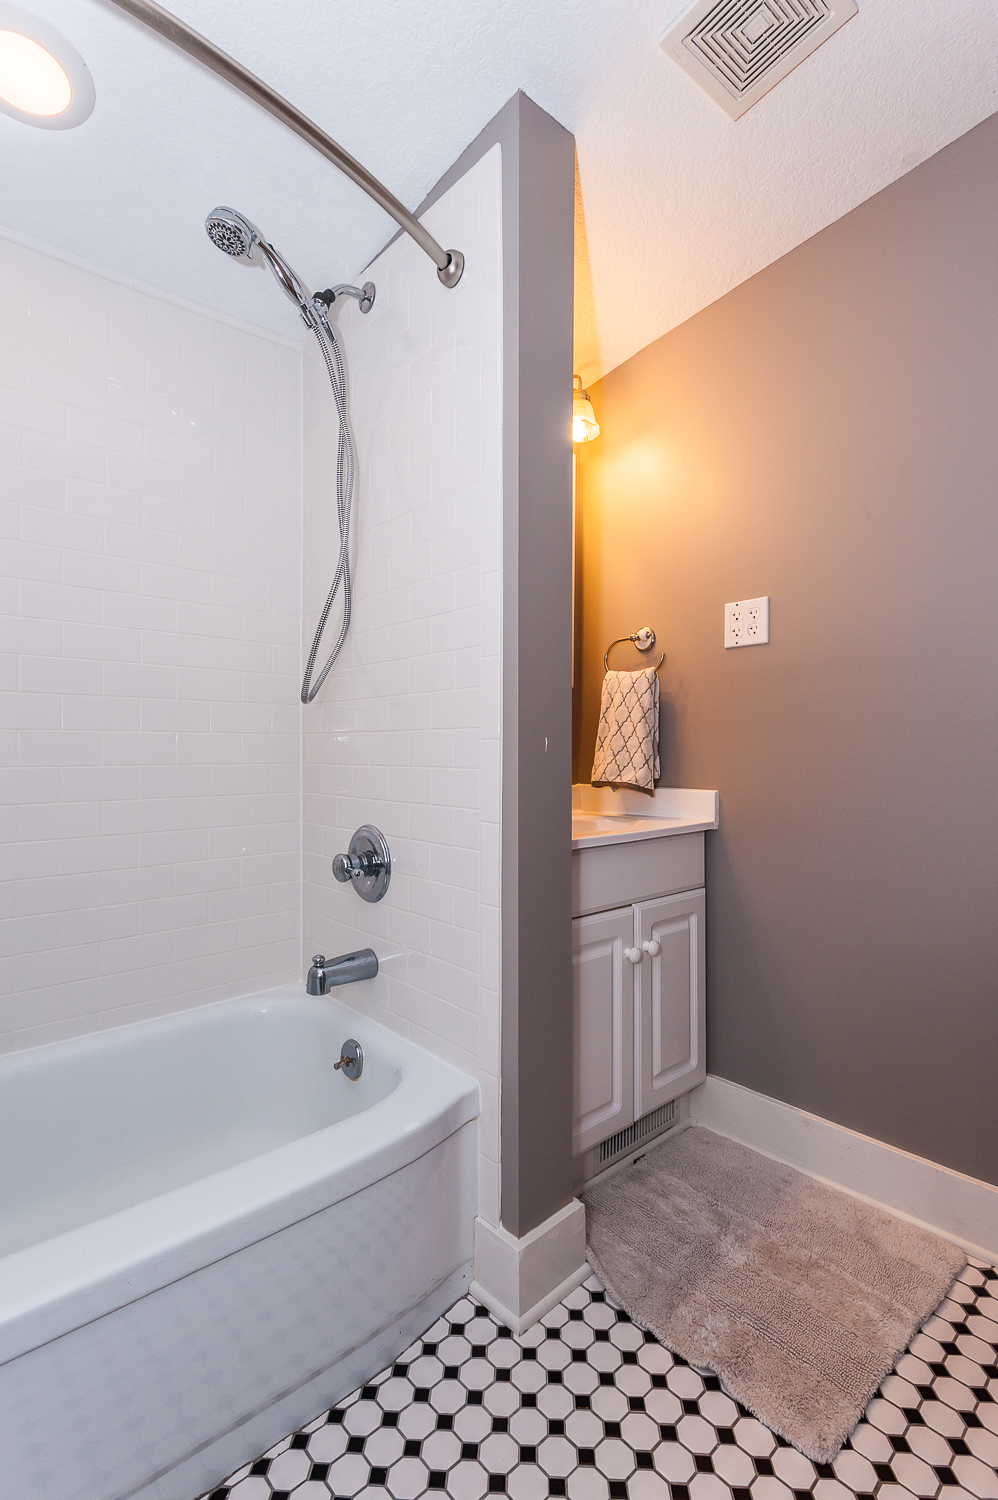 Second floor: Full bathroom with shower/tub combination